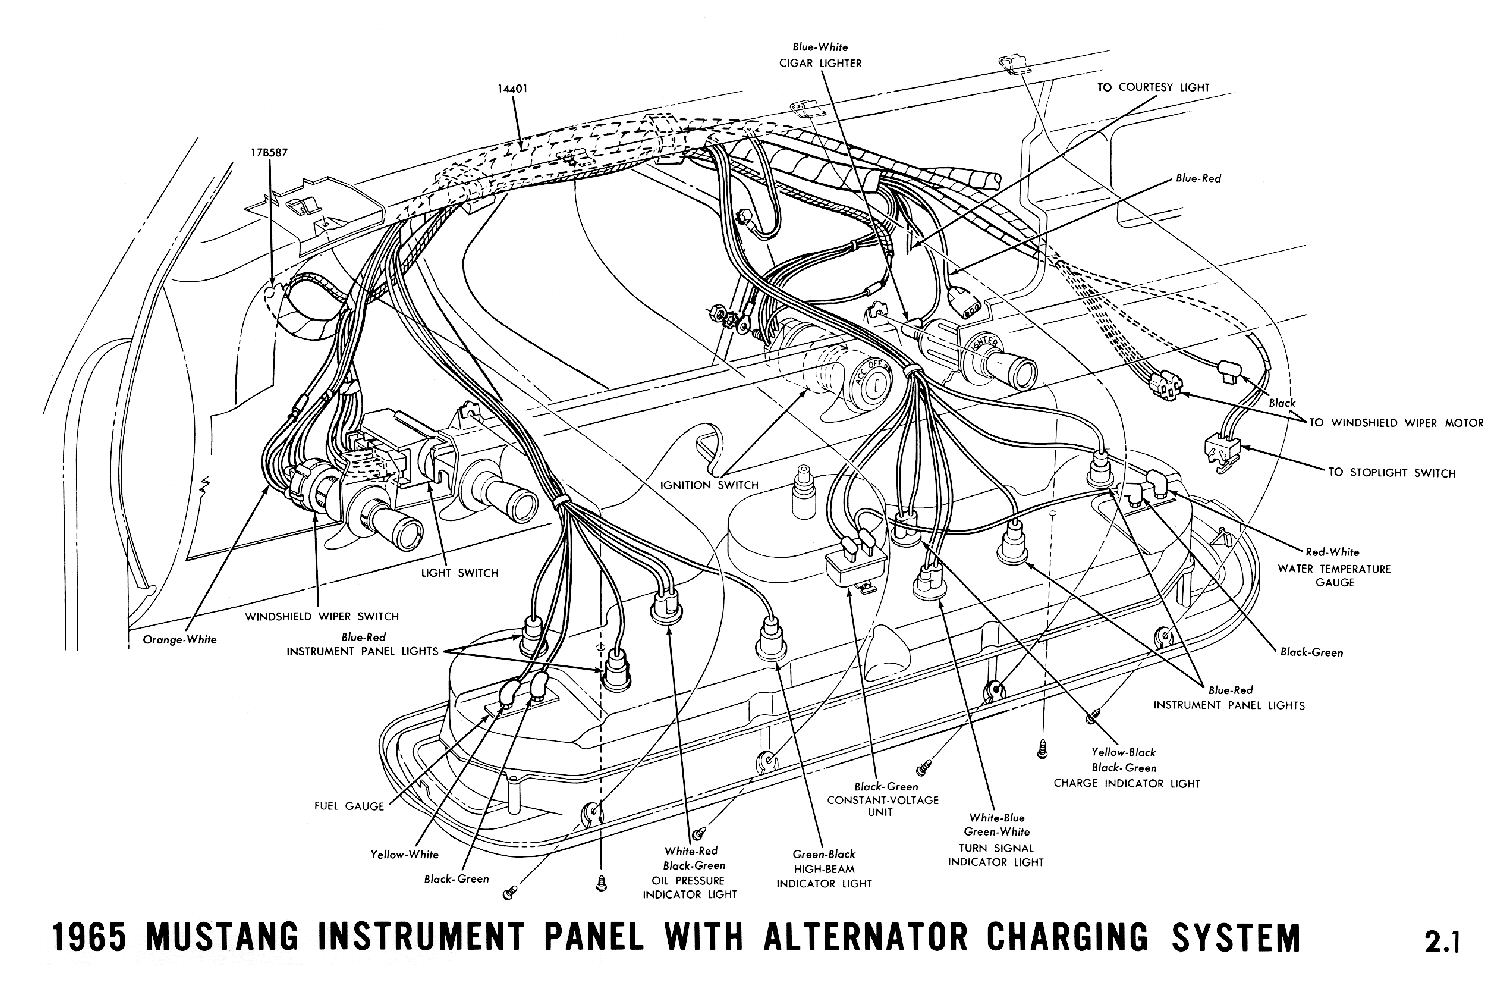 1965 Mustang Wiring Diagrams Average Joe Restoration 69 Mustang Wiring  Diagram 65 Mustang Radio Wiring Diagram